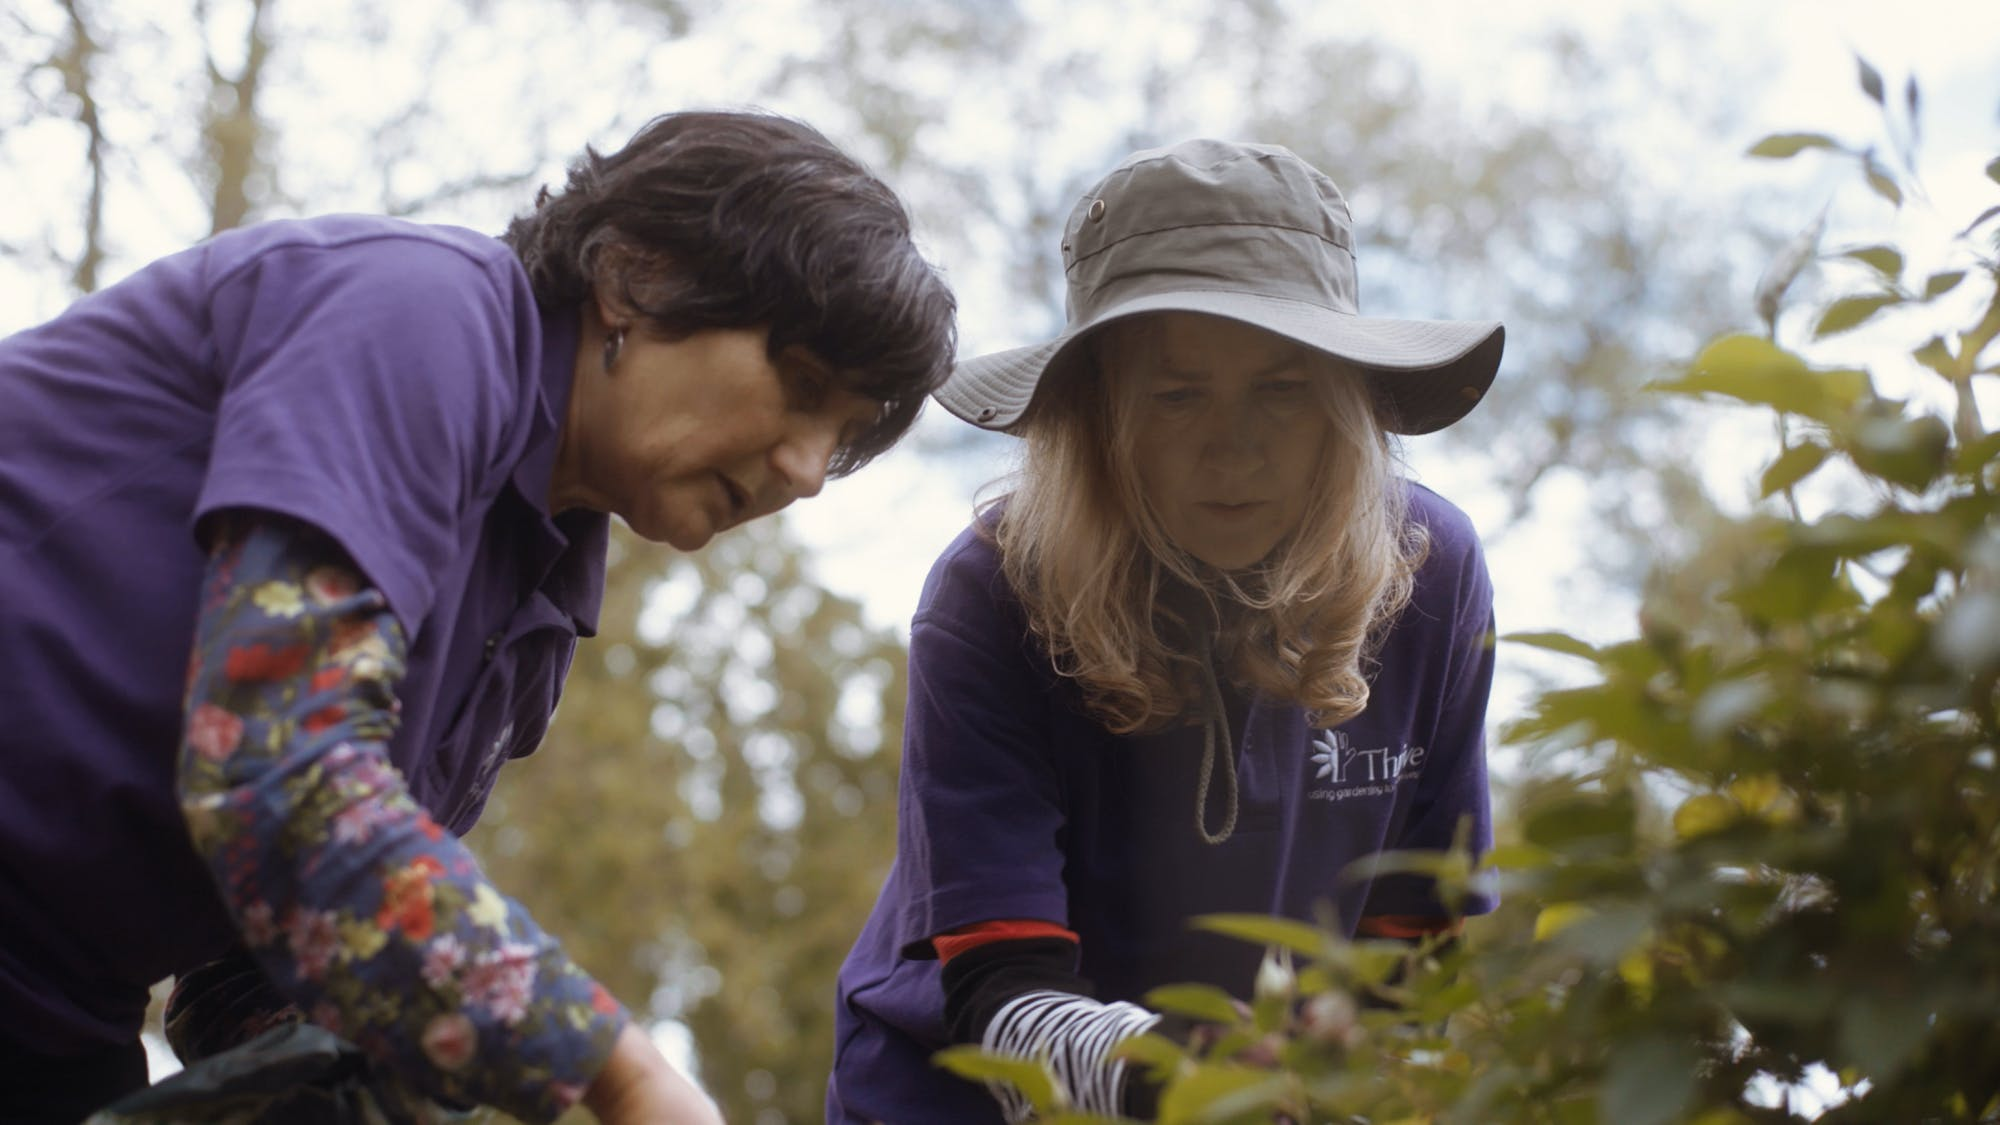 Love Letters from Britain Jo Malone London: Healing through Horticulture